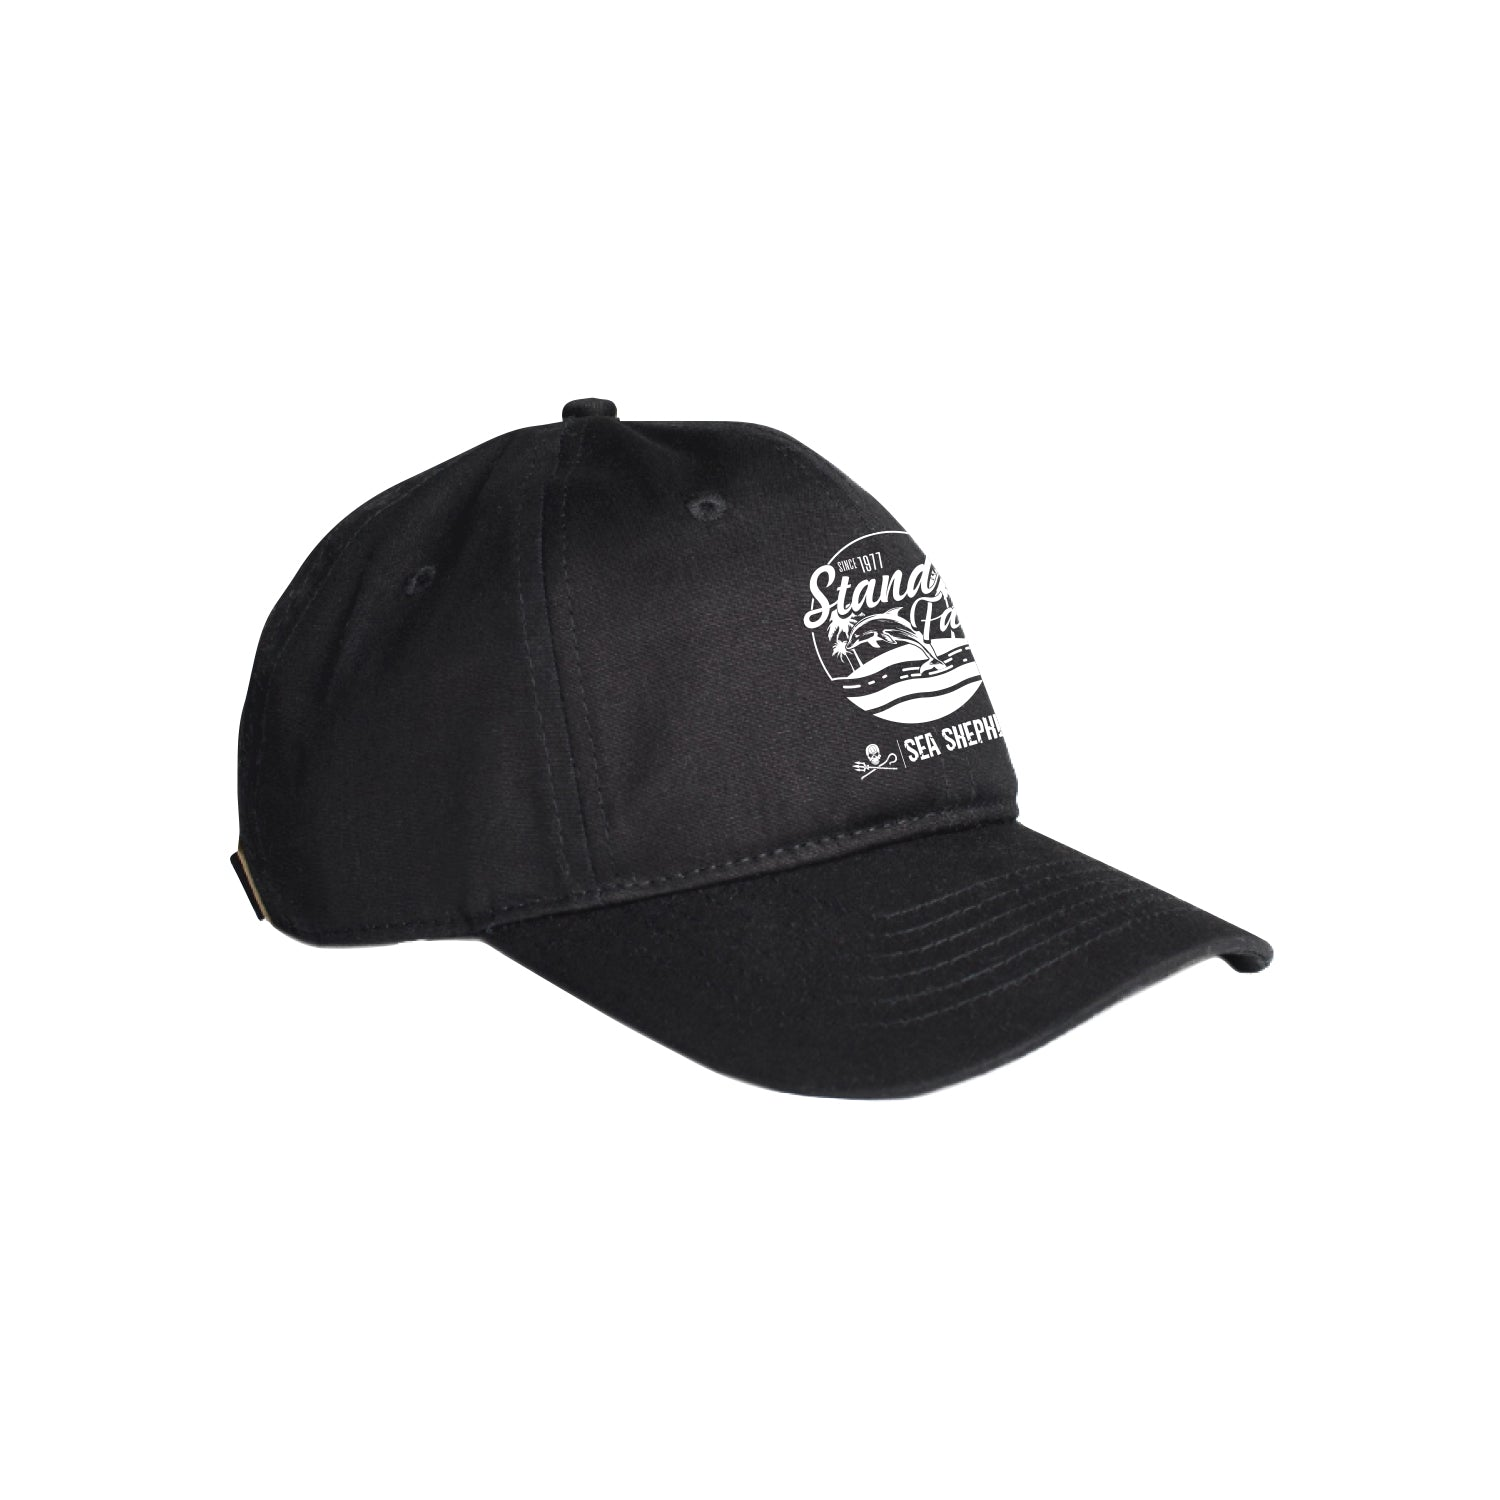 Sea Shepherd Stand Fast - Island Time - Black Organic Cap, 6 Panel